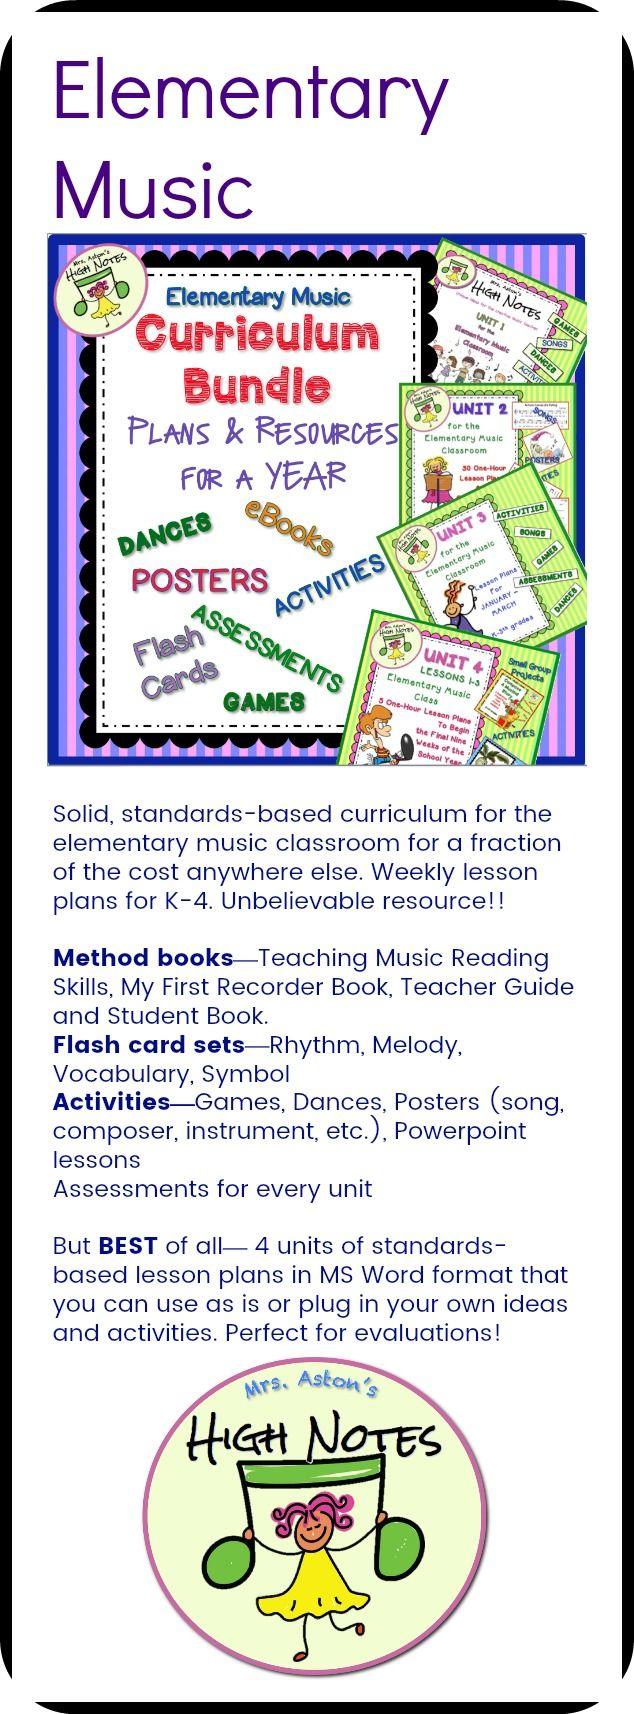 17 Best Units For Elementary Music Images On Pinterest